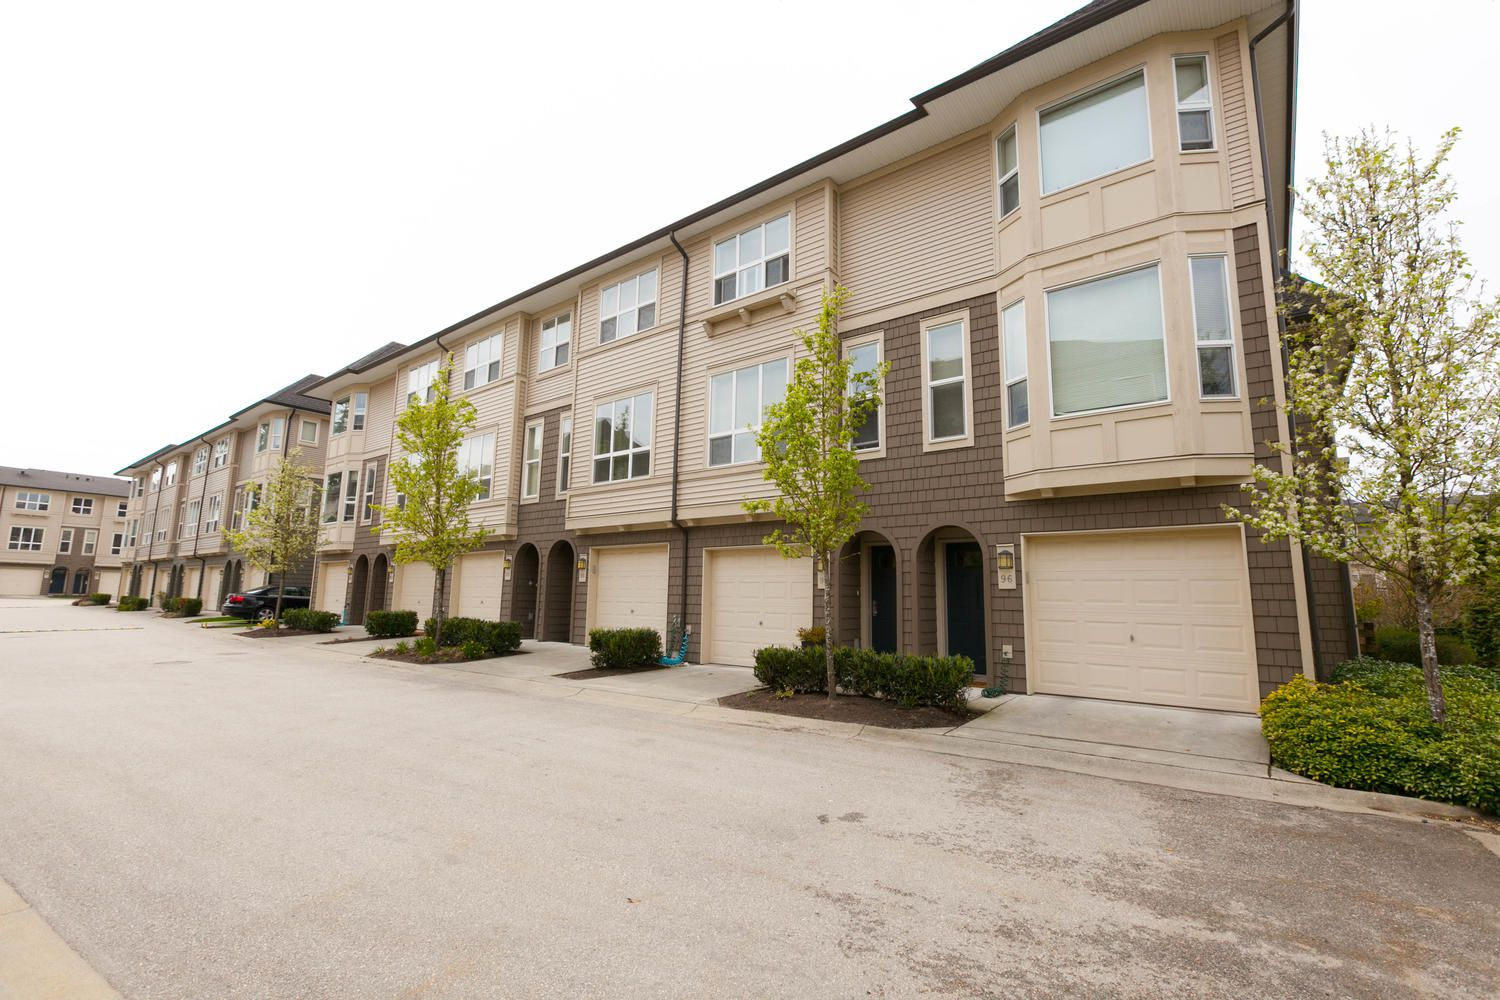 """Photo 41: Photos: 97 7938 209 Street in Langley: Willoughby Heights Townhouse for sale in """"Red Maple Park"""" : MLS®# R2260950"""